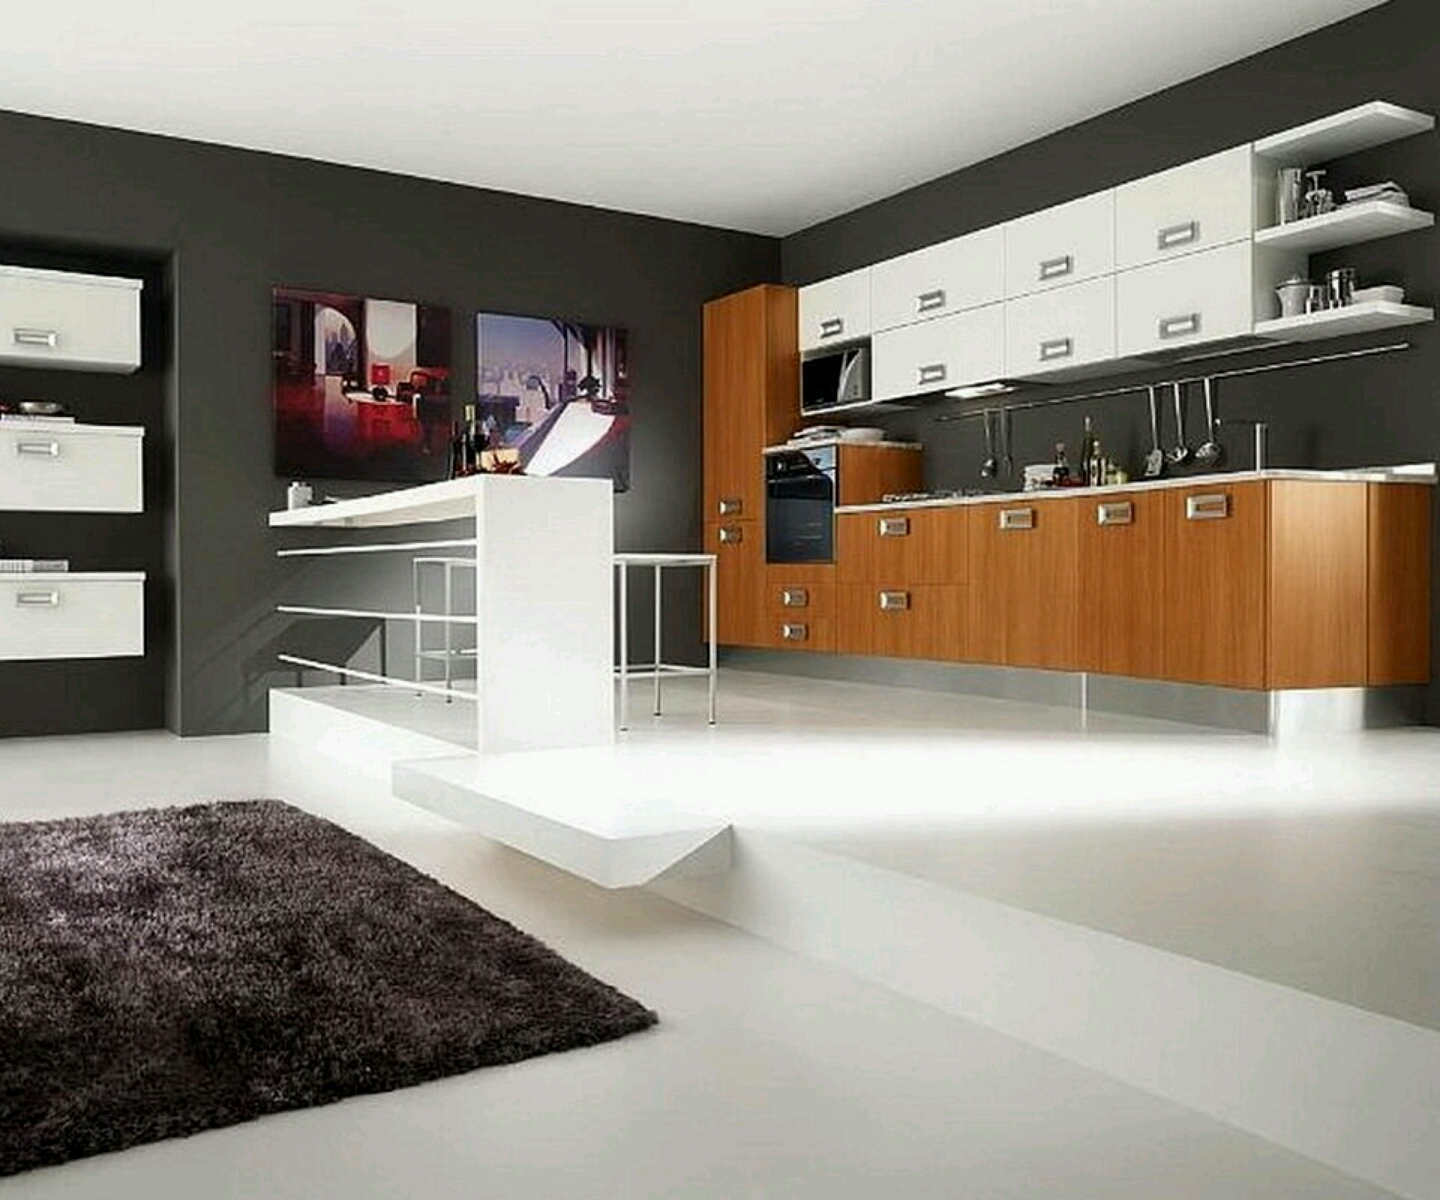 New Home Designs Latest Modern Home Kitchen Cabinet: New Home Designs Latest.: Ultra Modern Kitchen Designs Ideas